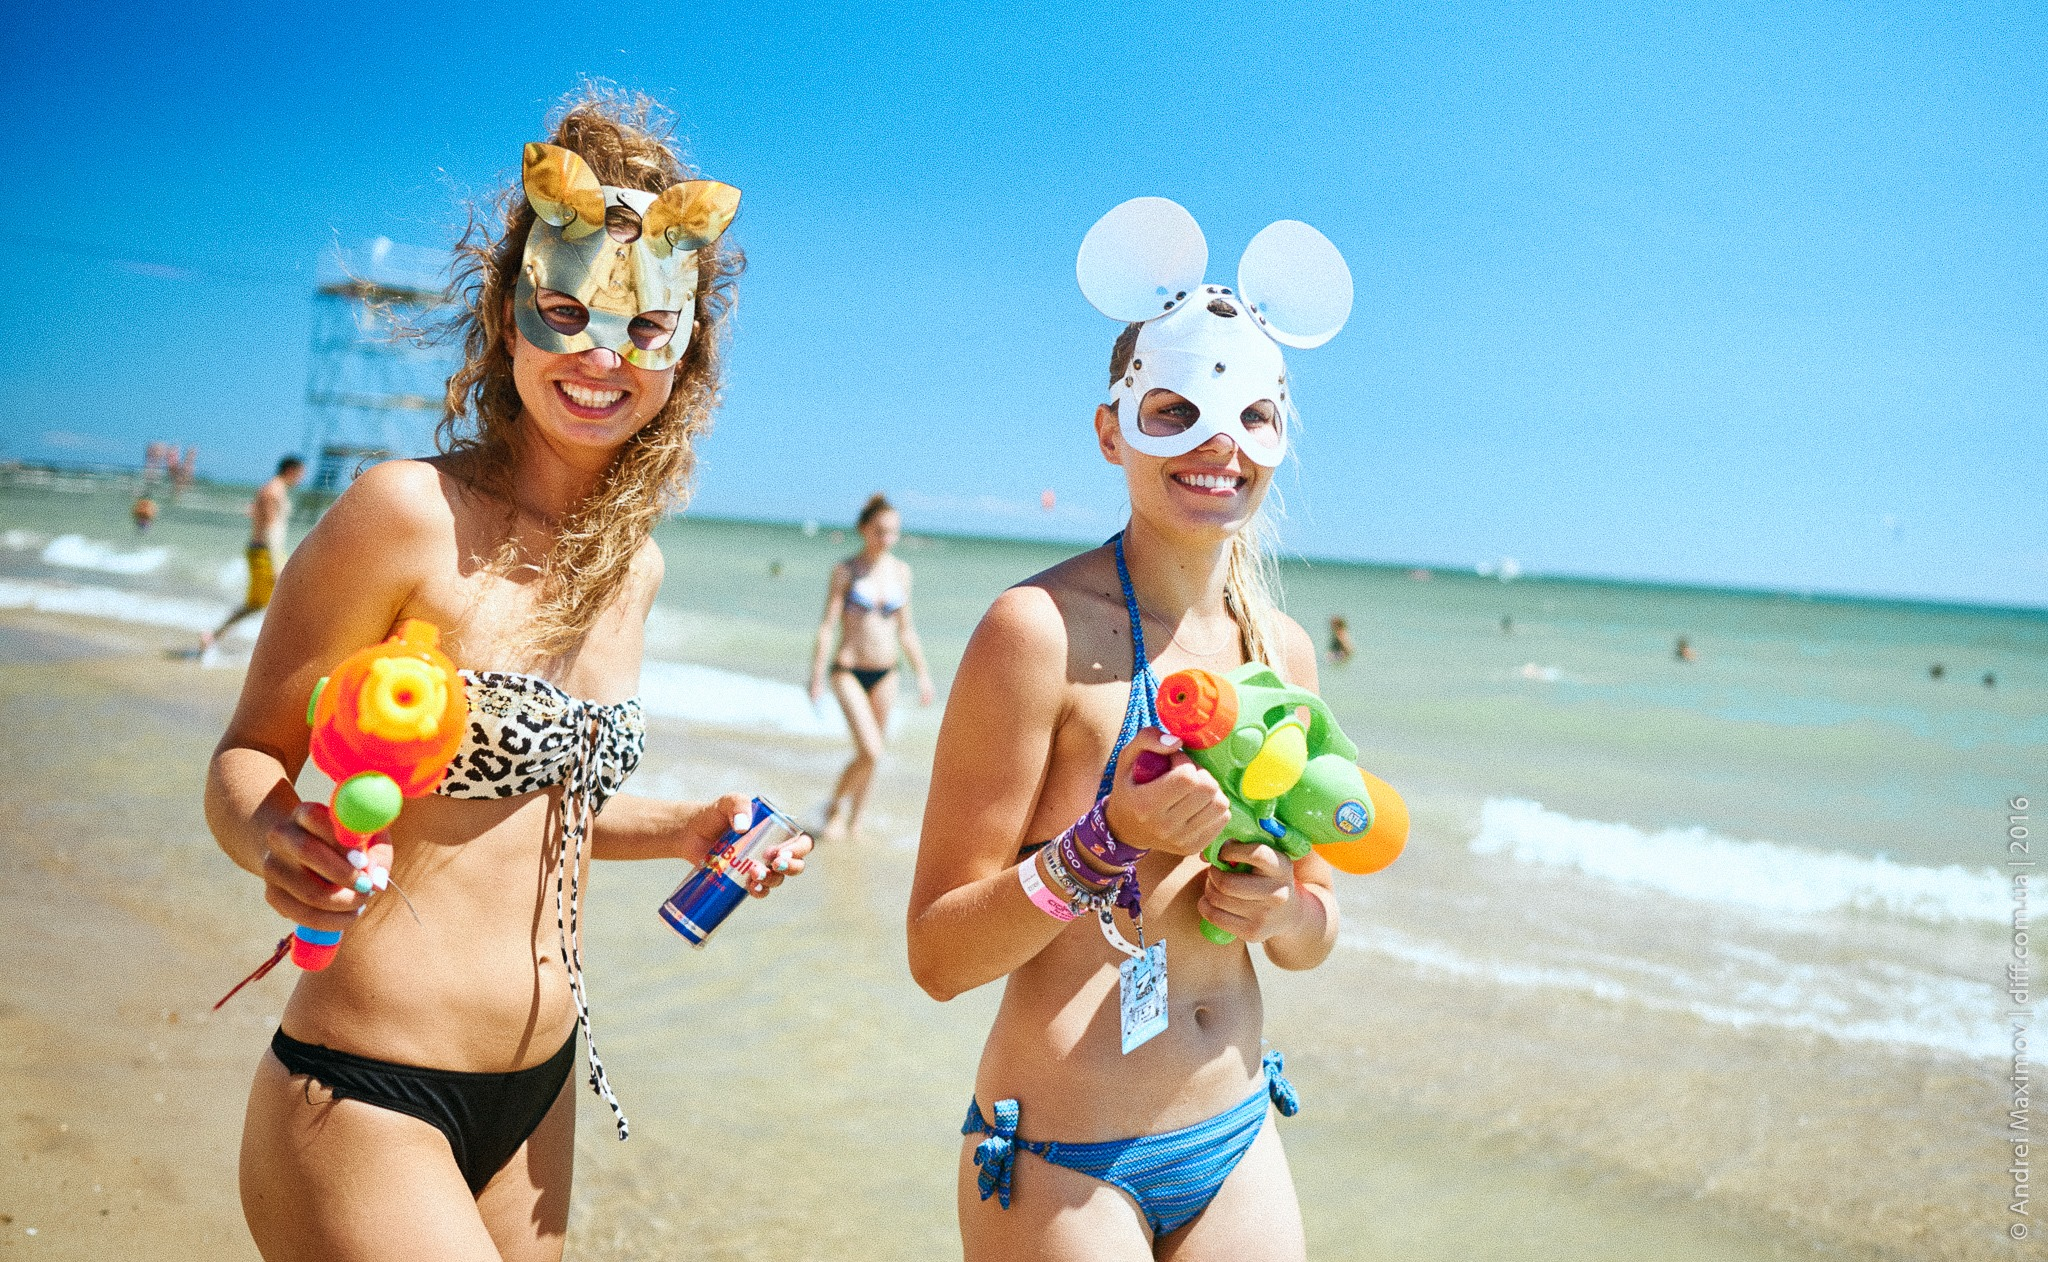 two girls in swimming suits on seashore in masks holding water pistols